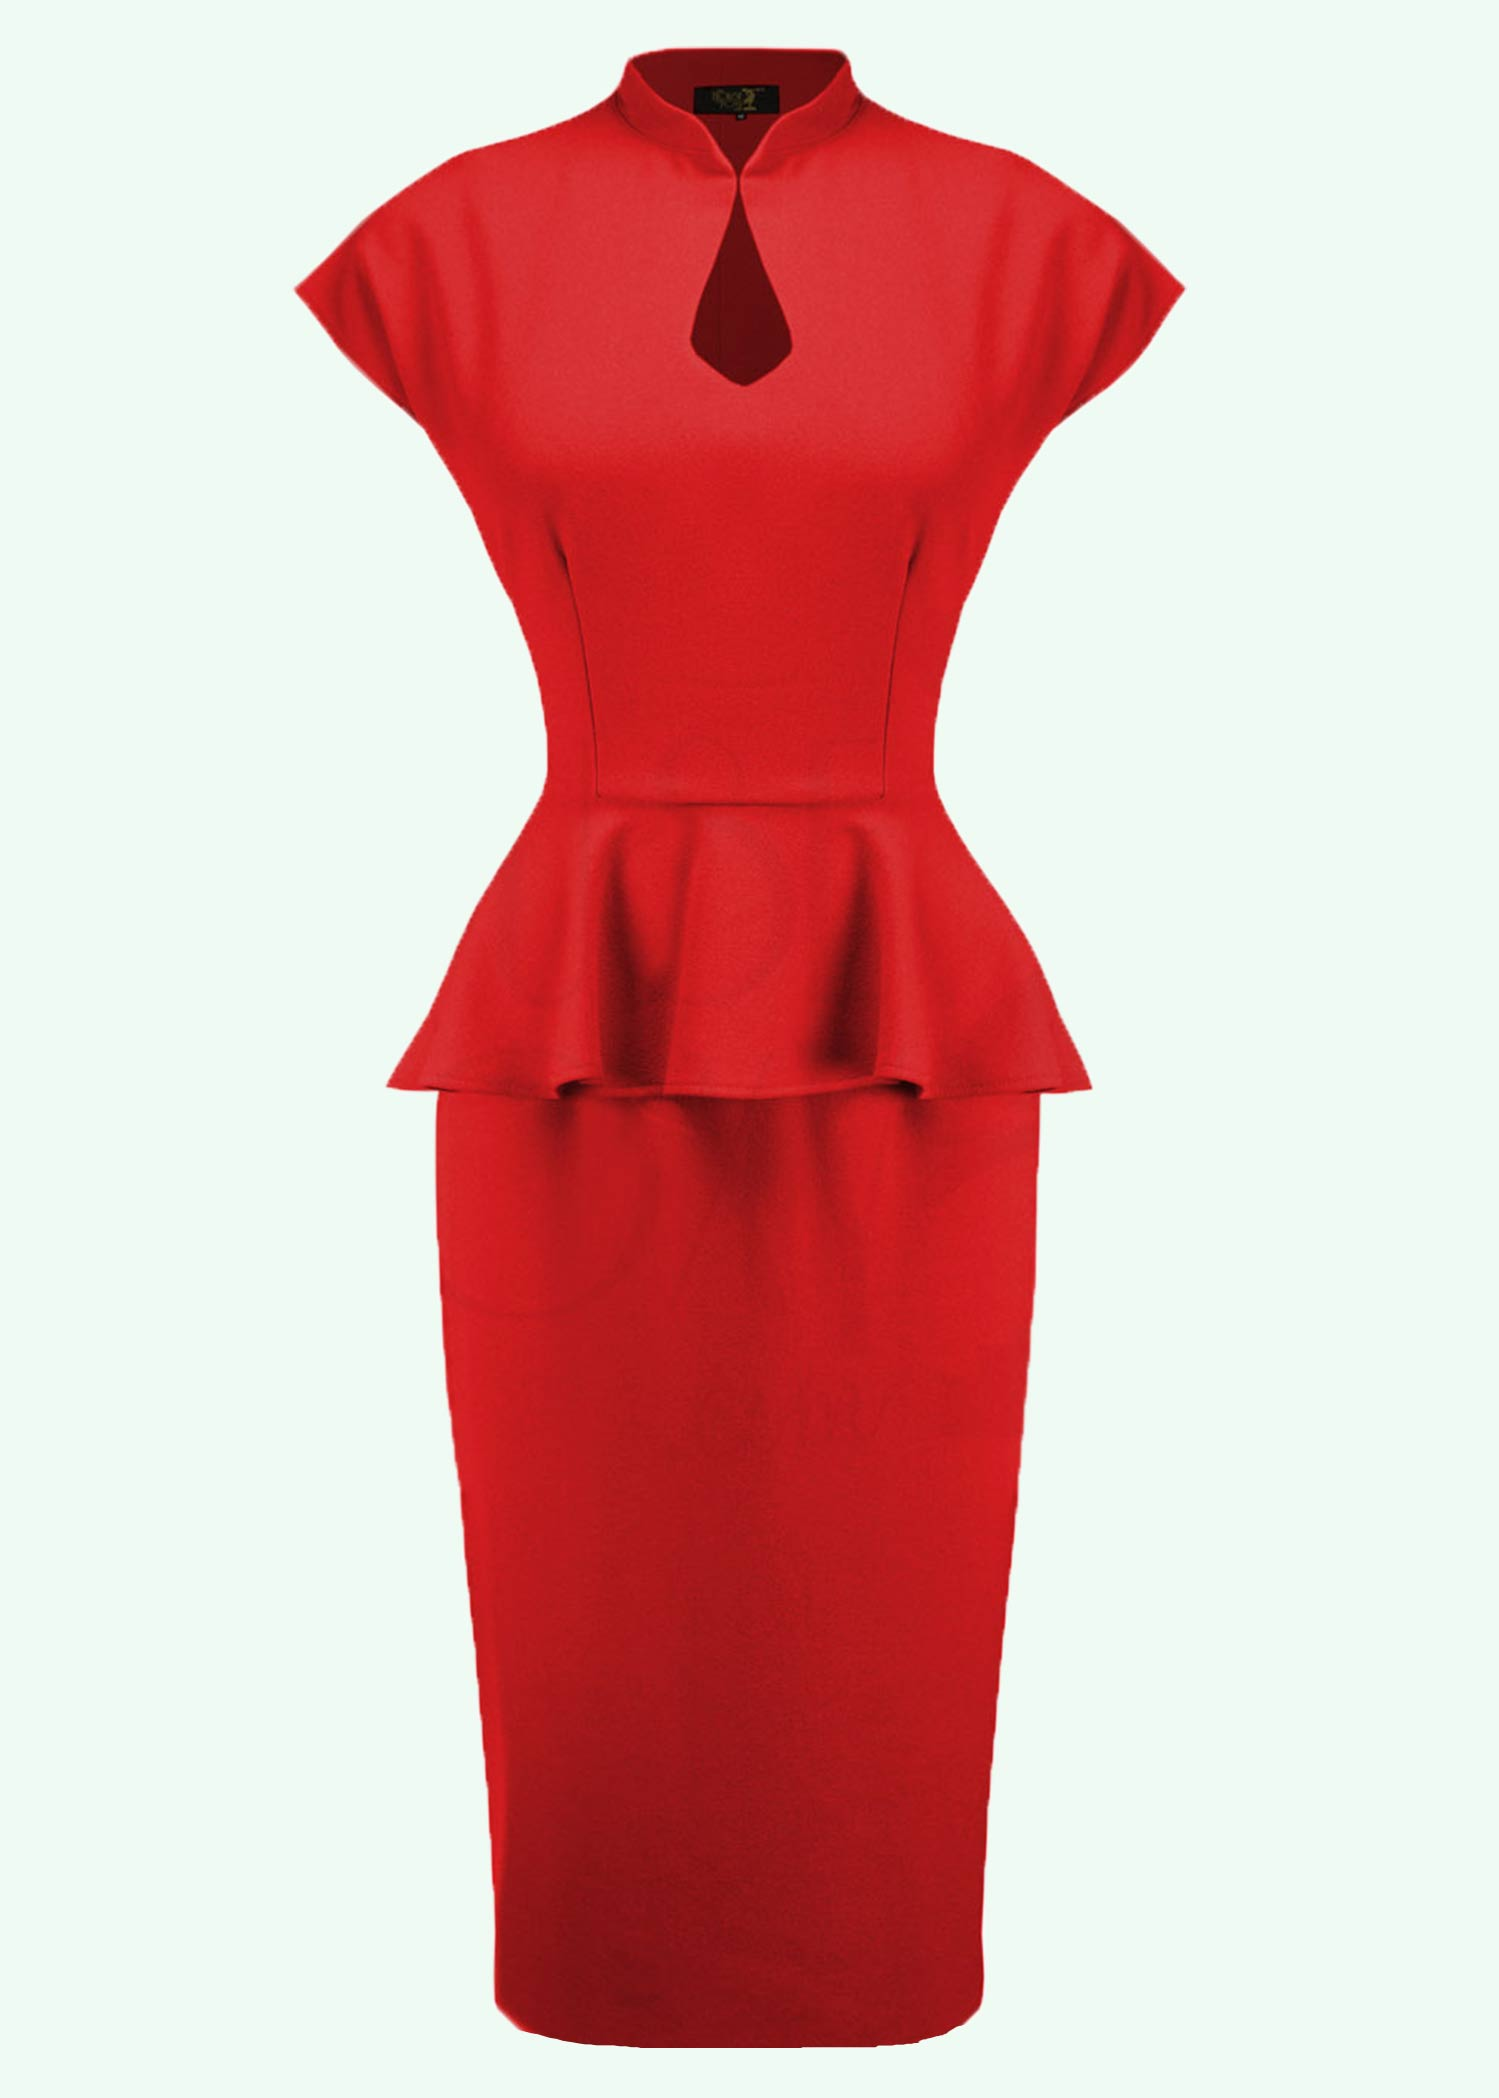 Lana pencil dress in red with peplum skirt from The House Of Foxy